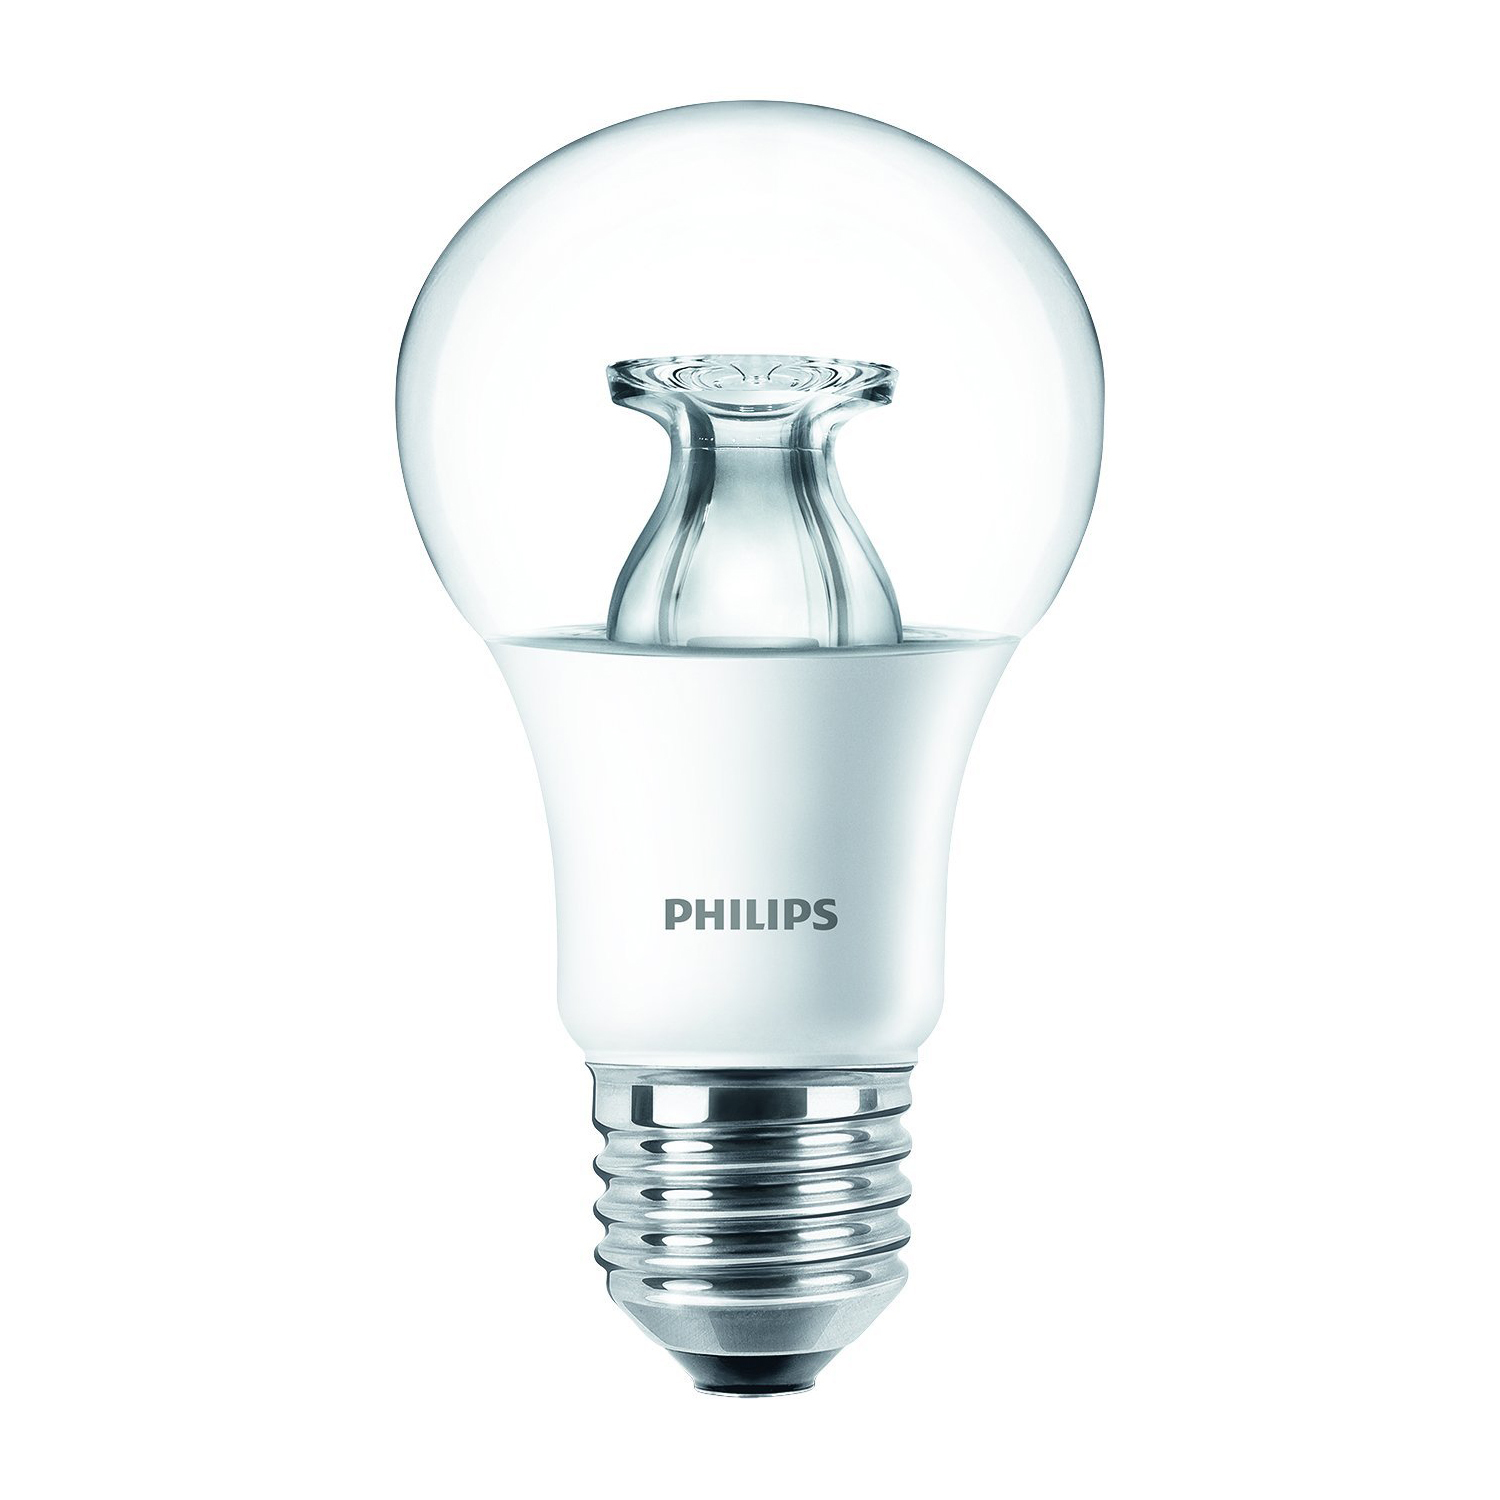 Led E27 Dimmbar Philips Led Lampe Warmglow Dimmbar Bei Notebooksbilliger De